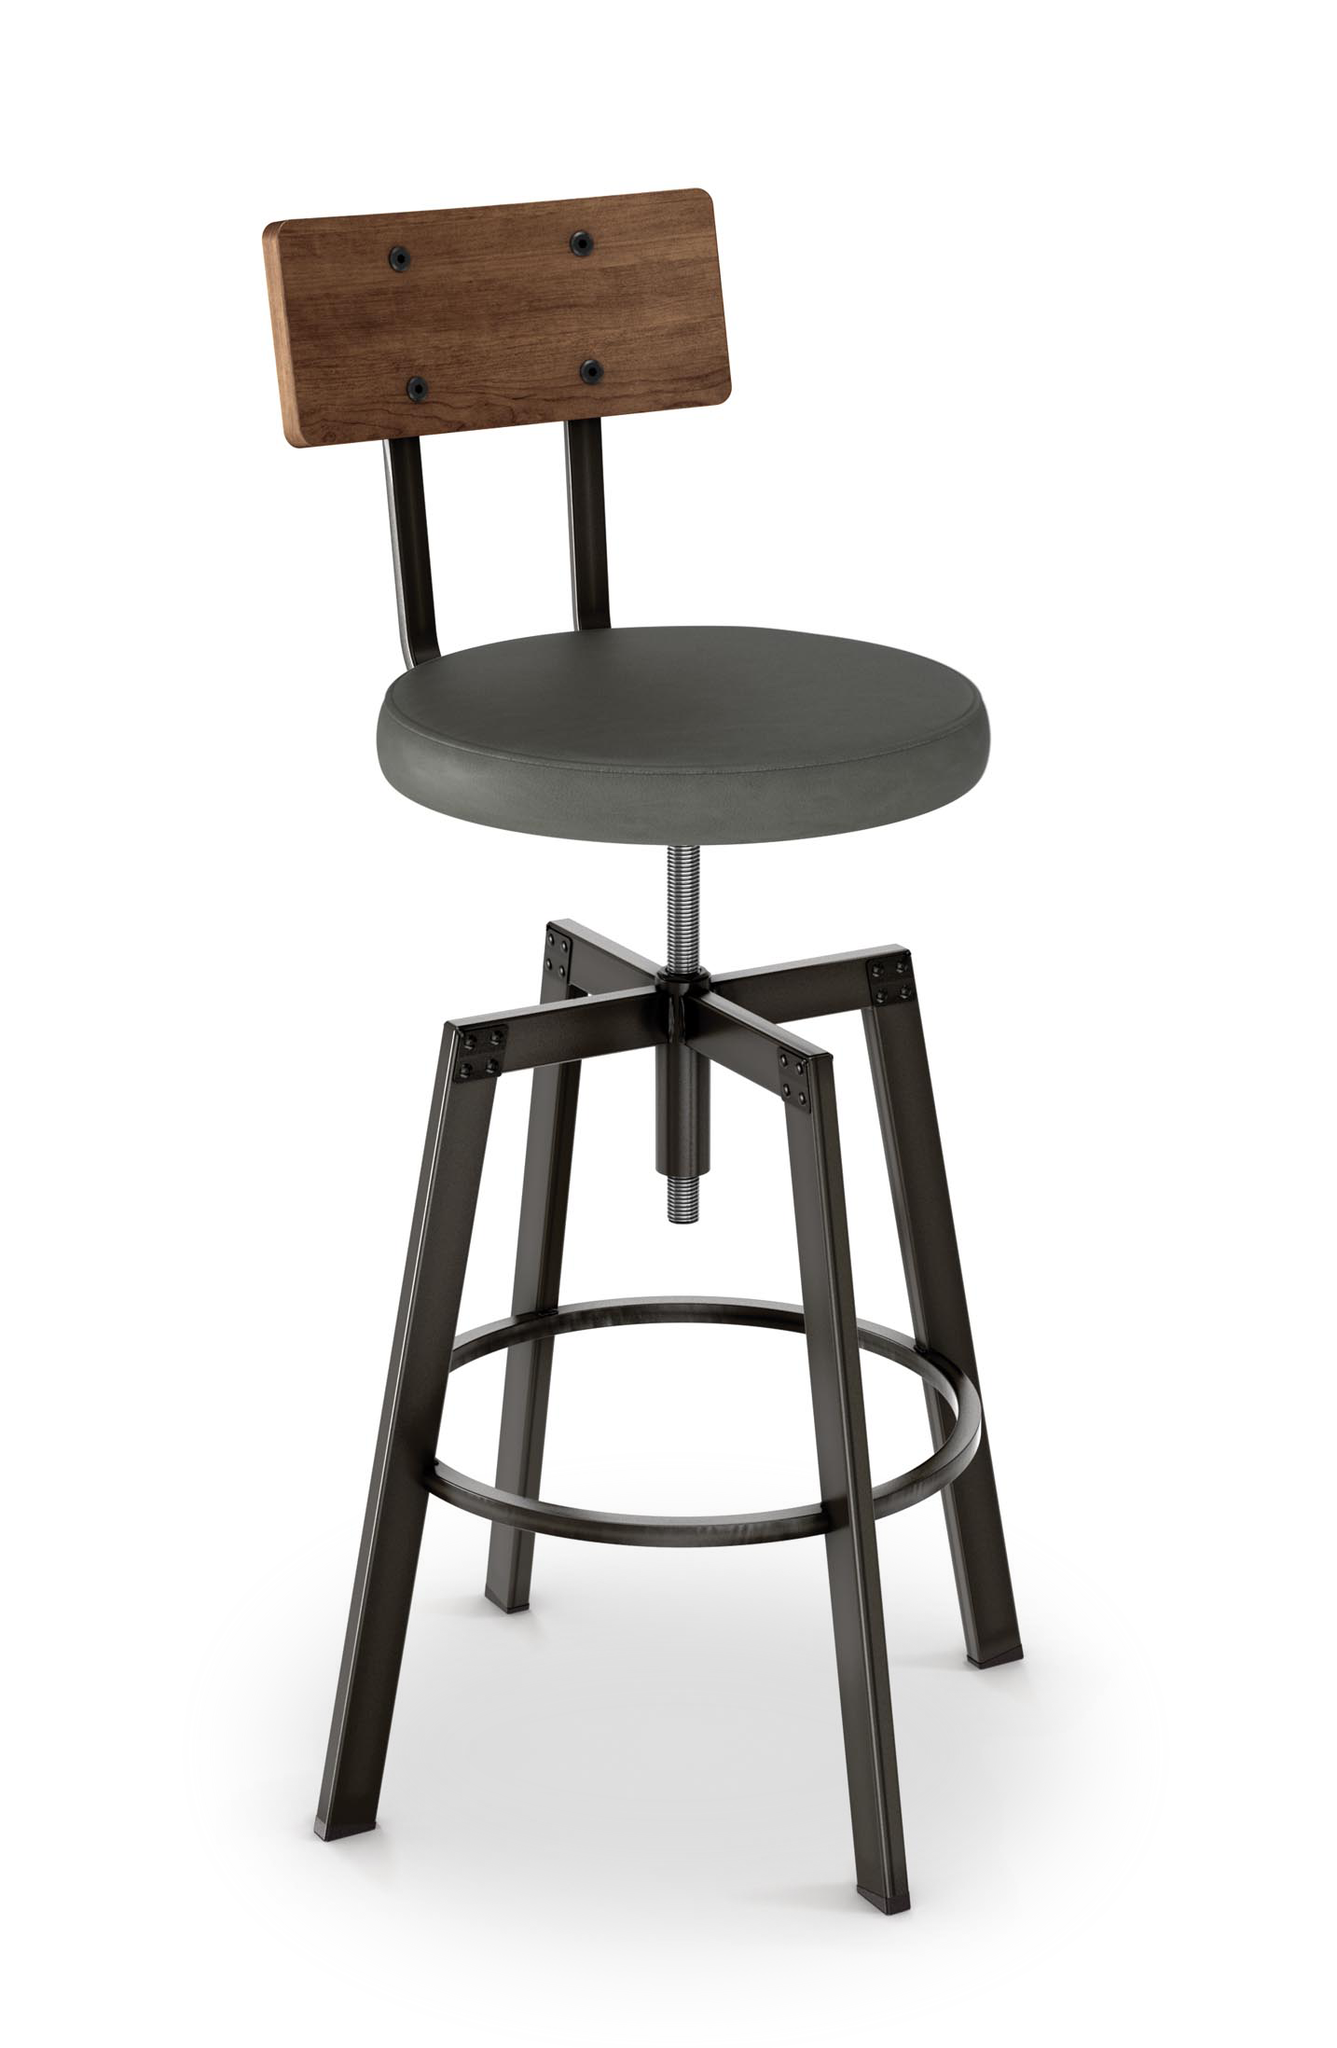 Picture of Architect Screw Stool - Wood/Upholstered